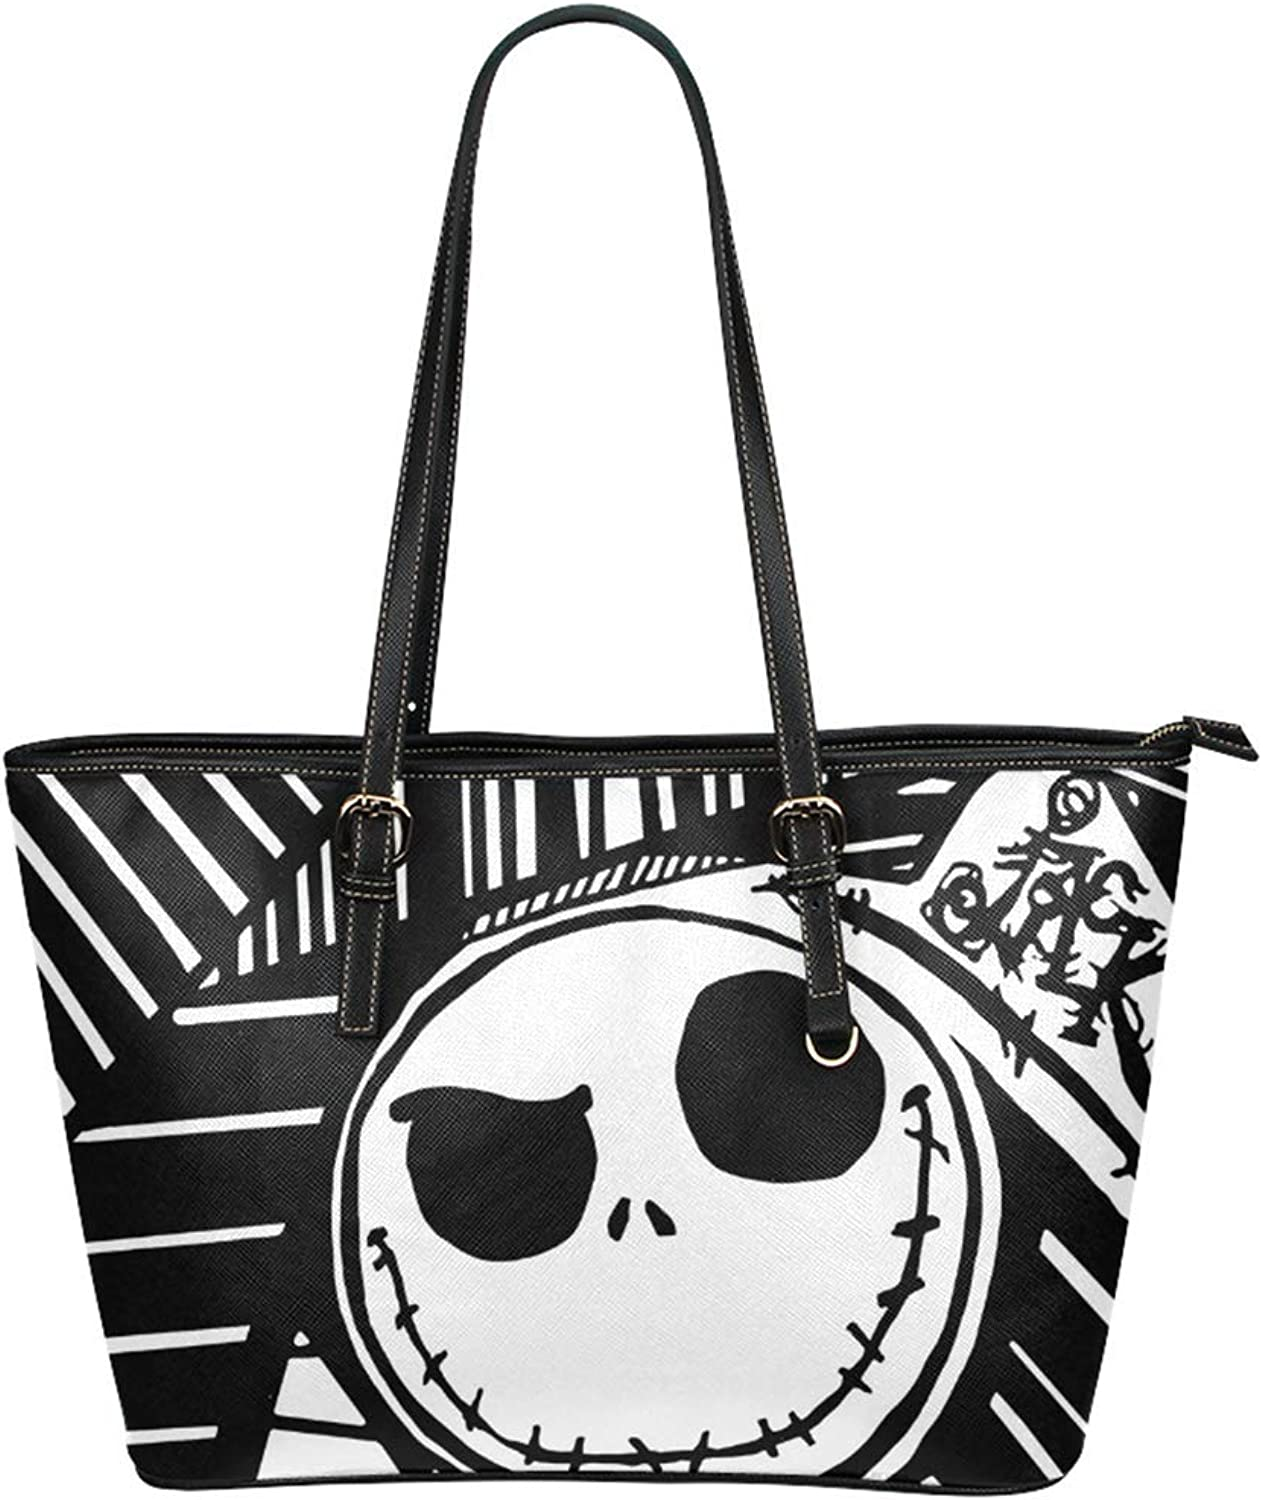 Cucoolso Jack and Sally Print Women Leather Top Handle Satchel Daily Work Tote Shoulder Bag Large Capacity